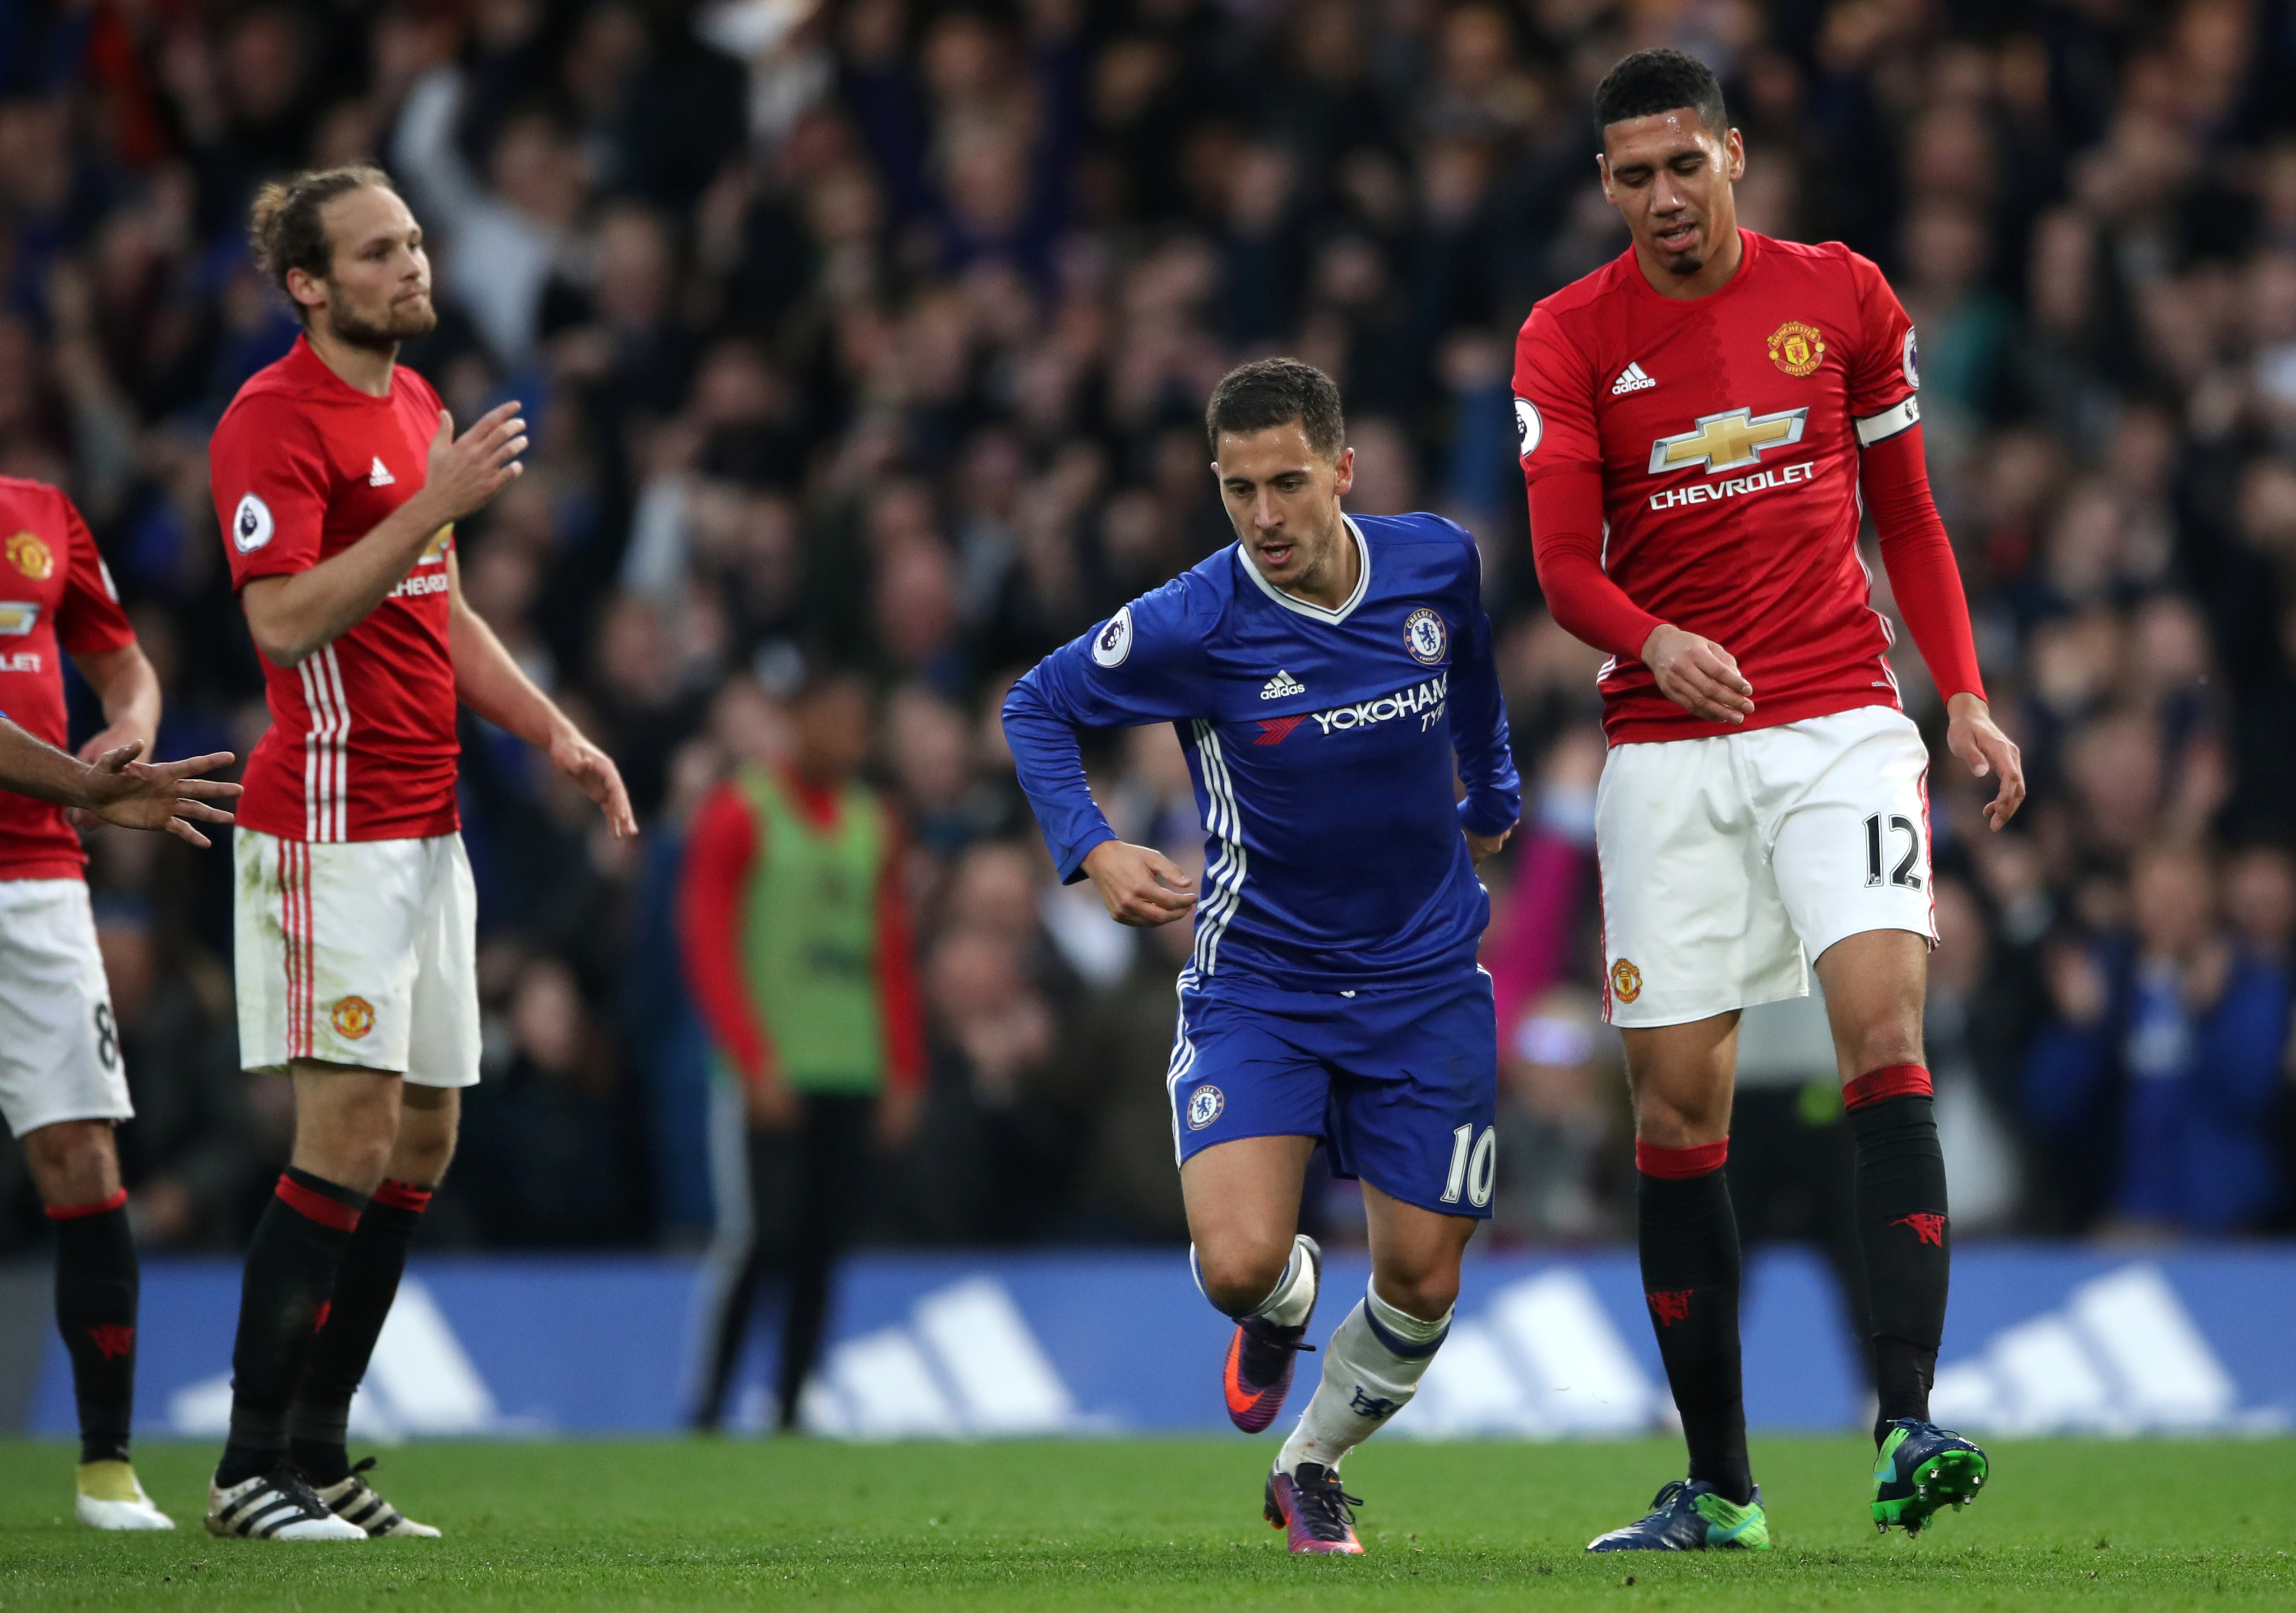 chelsea vs man united - photo #33